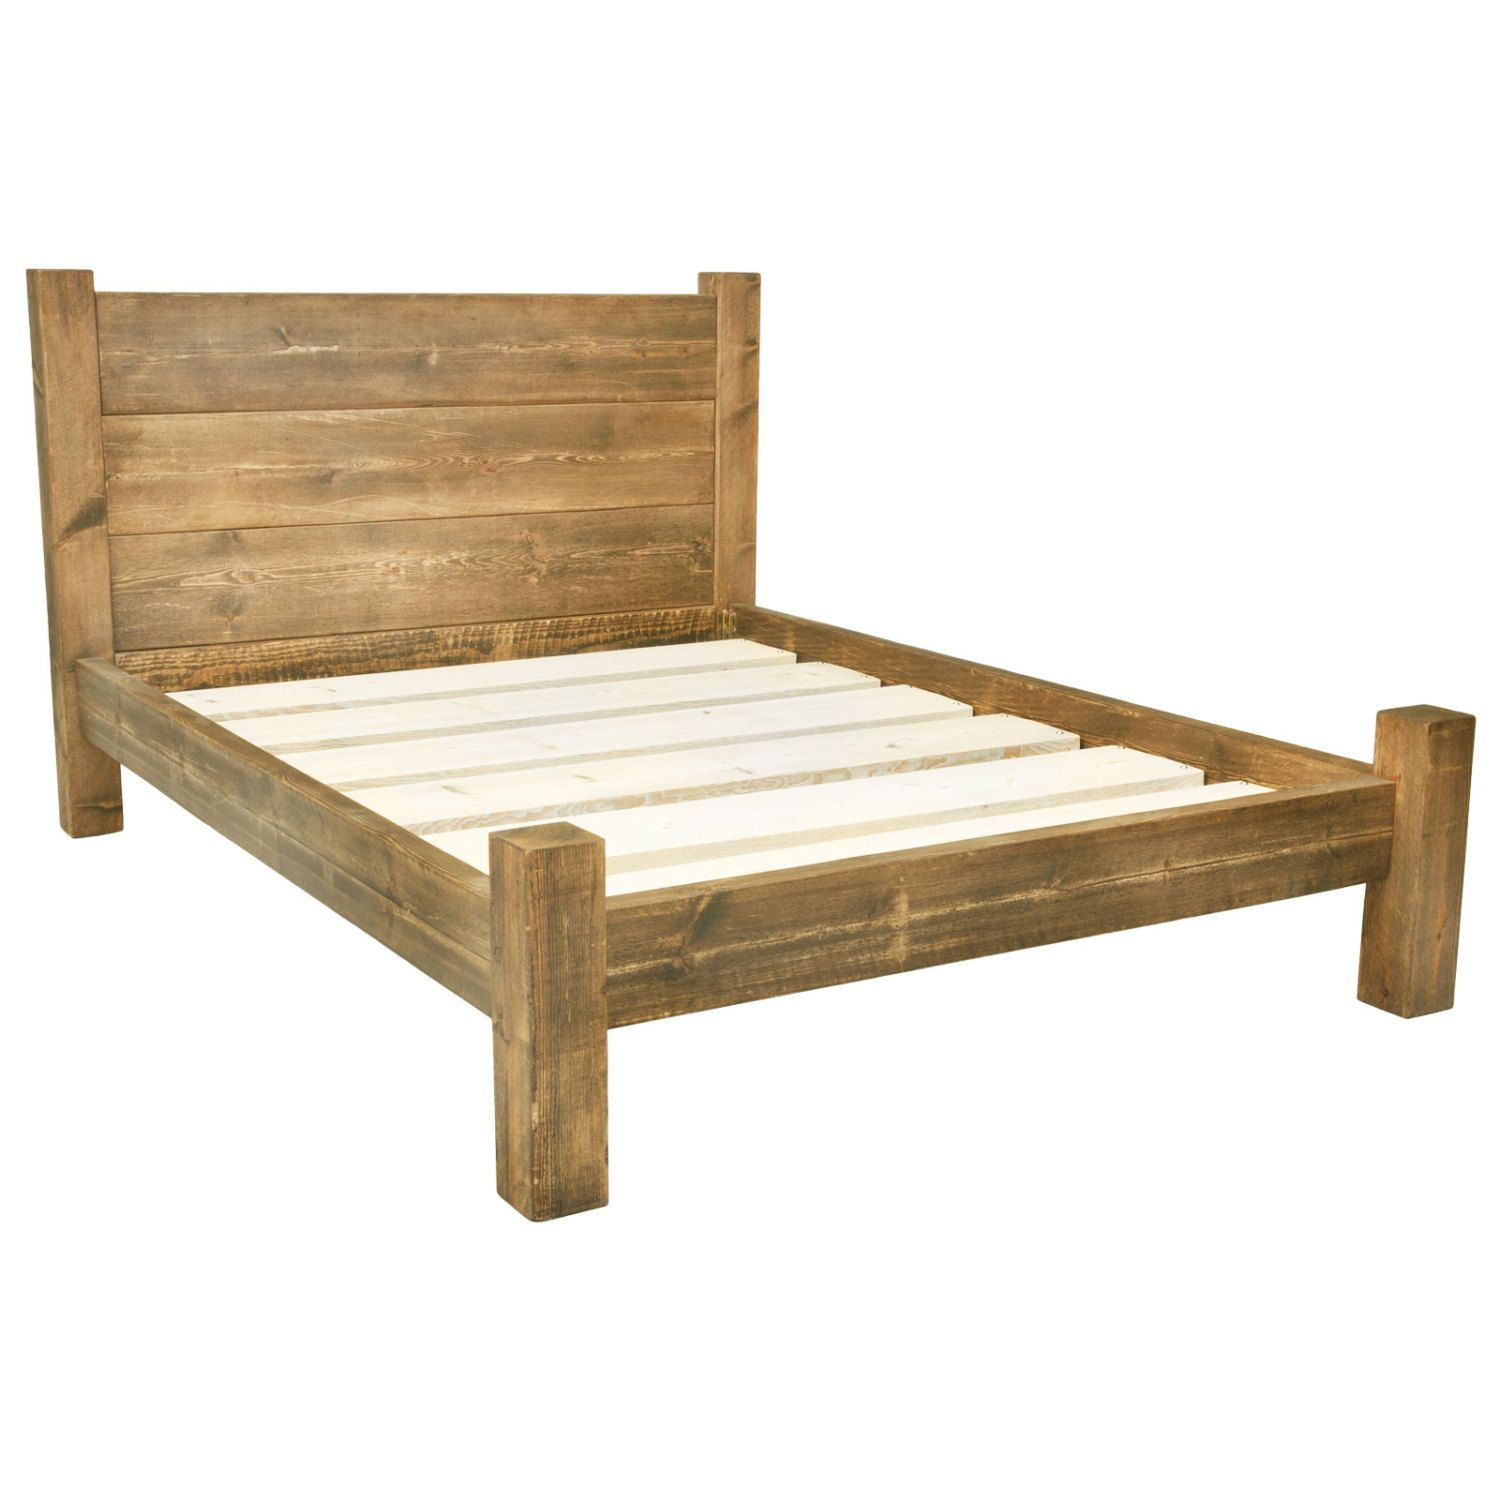 Solid Wooden Chunky Bed Frame In A Choice Of Sizes Single, Double,  Kingsize, Super King And Rustic Wax Finishes With Treble Plank Headboard